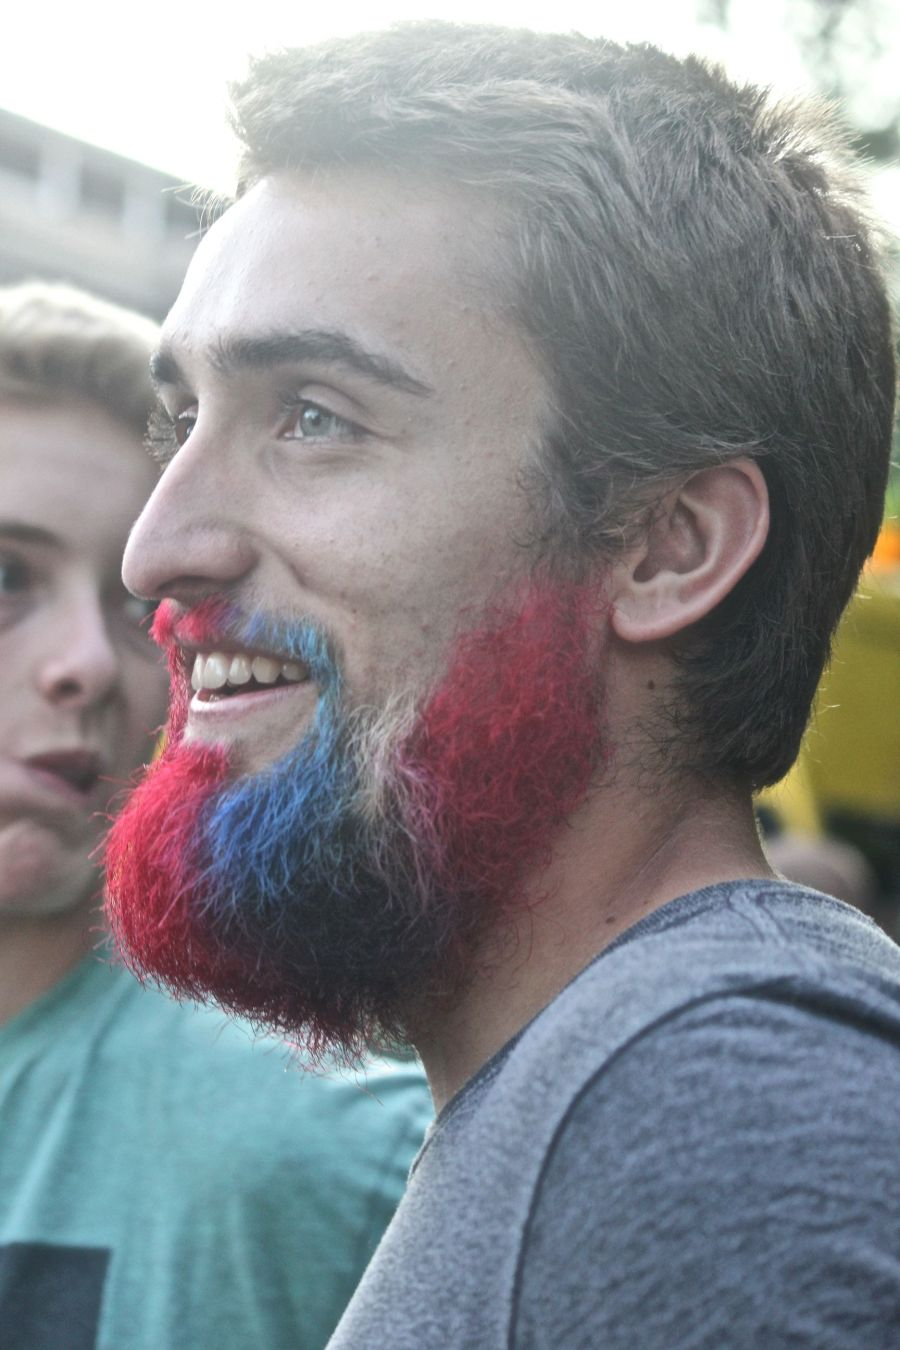 boston july 4th fireworks celebration man with red white and blue beard